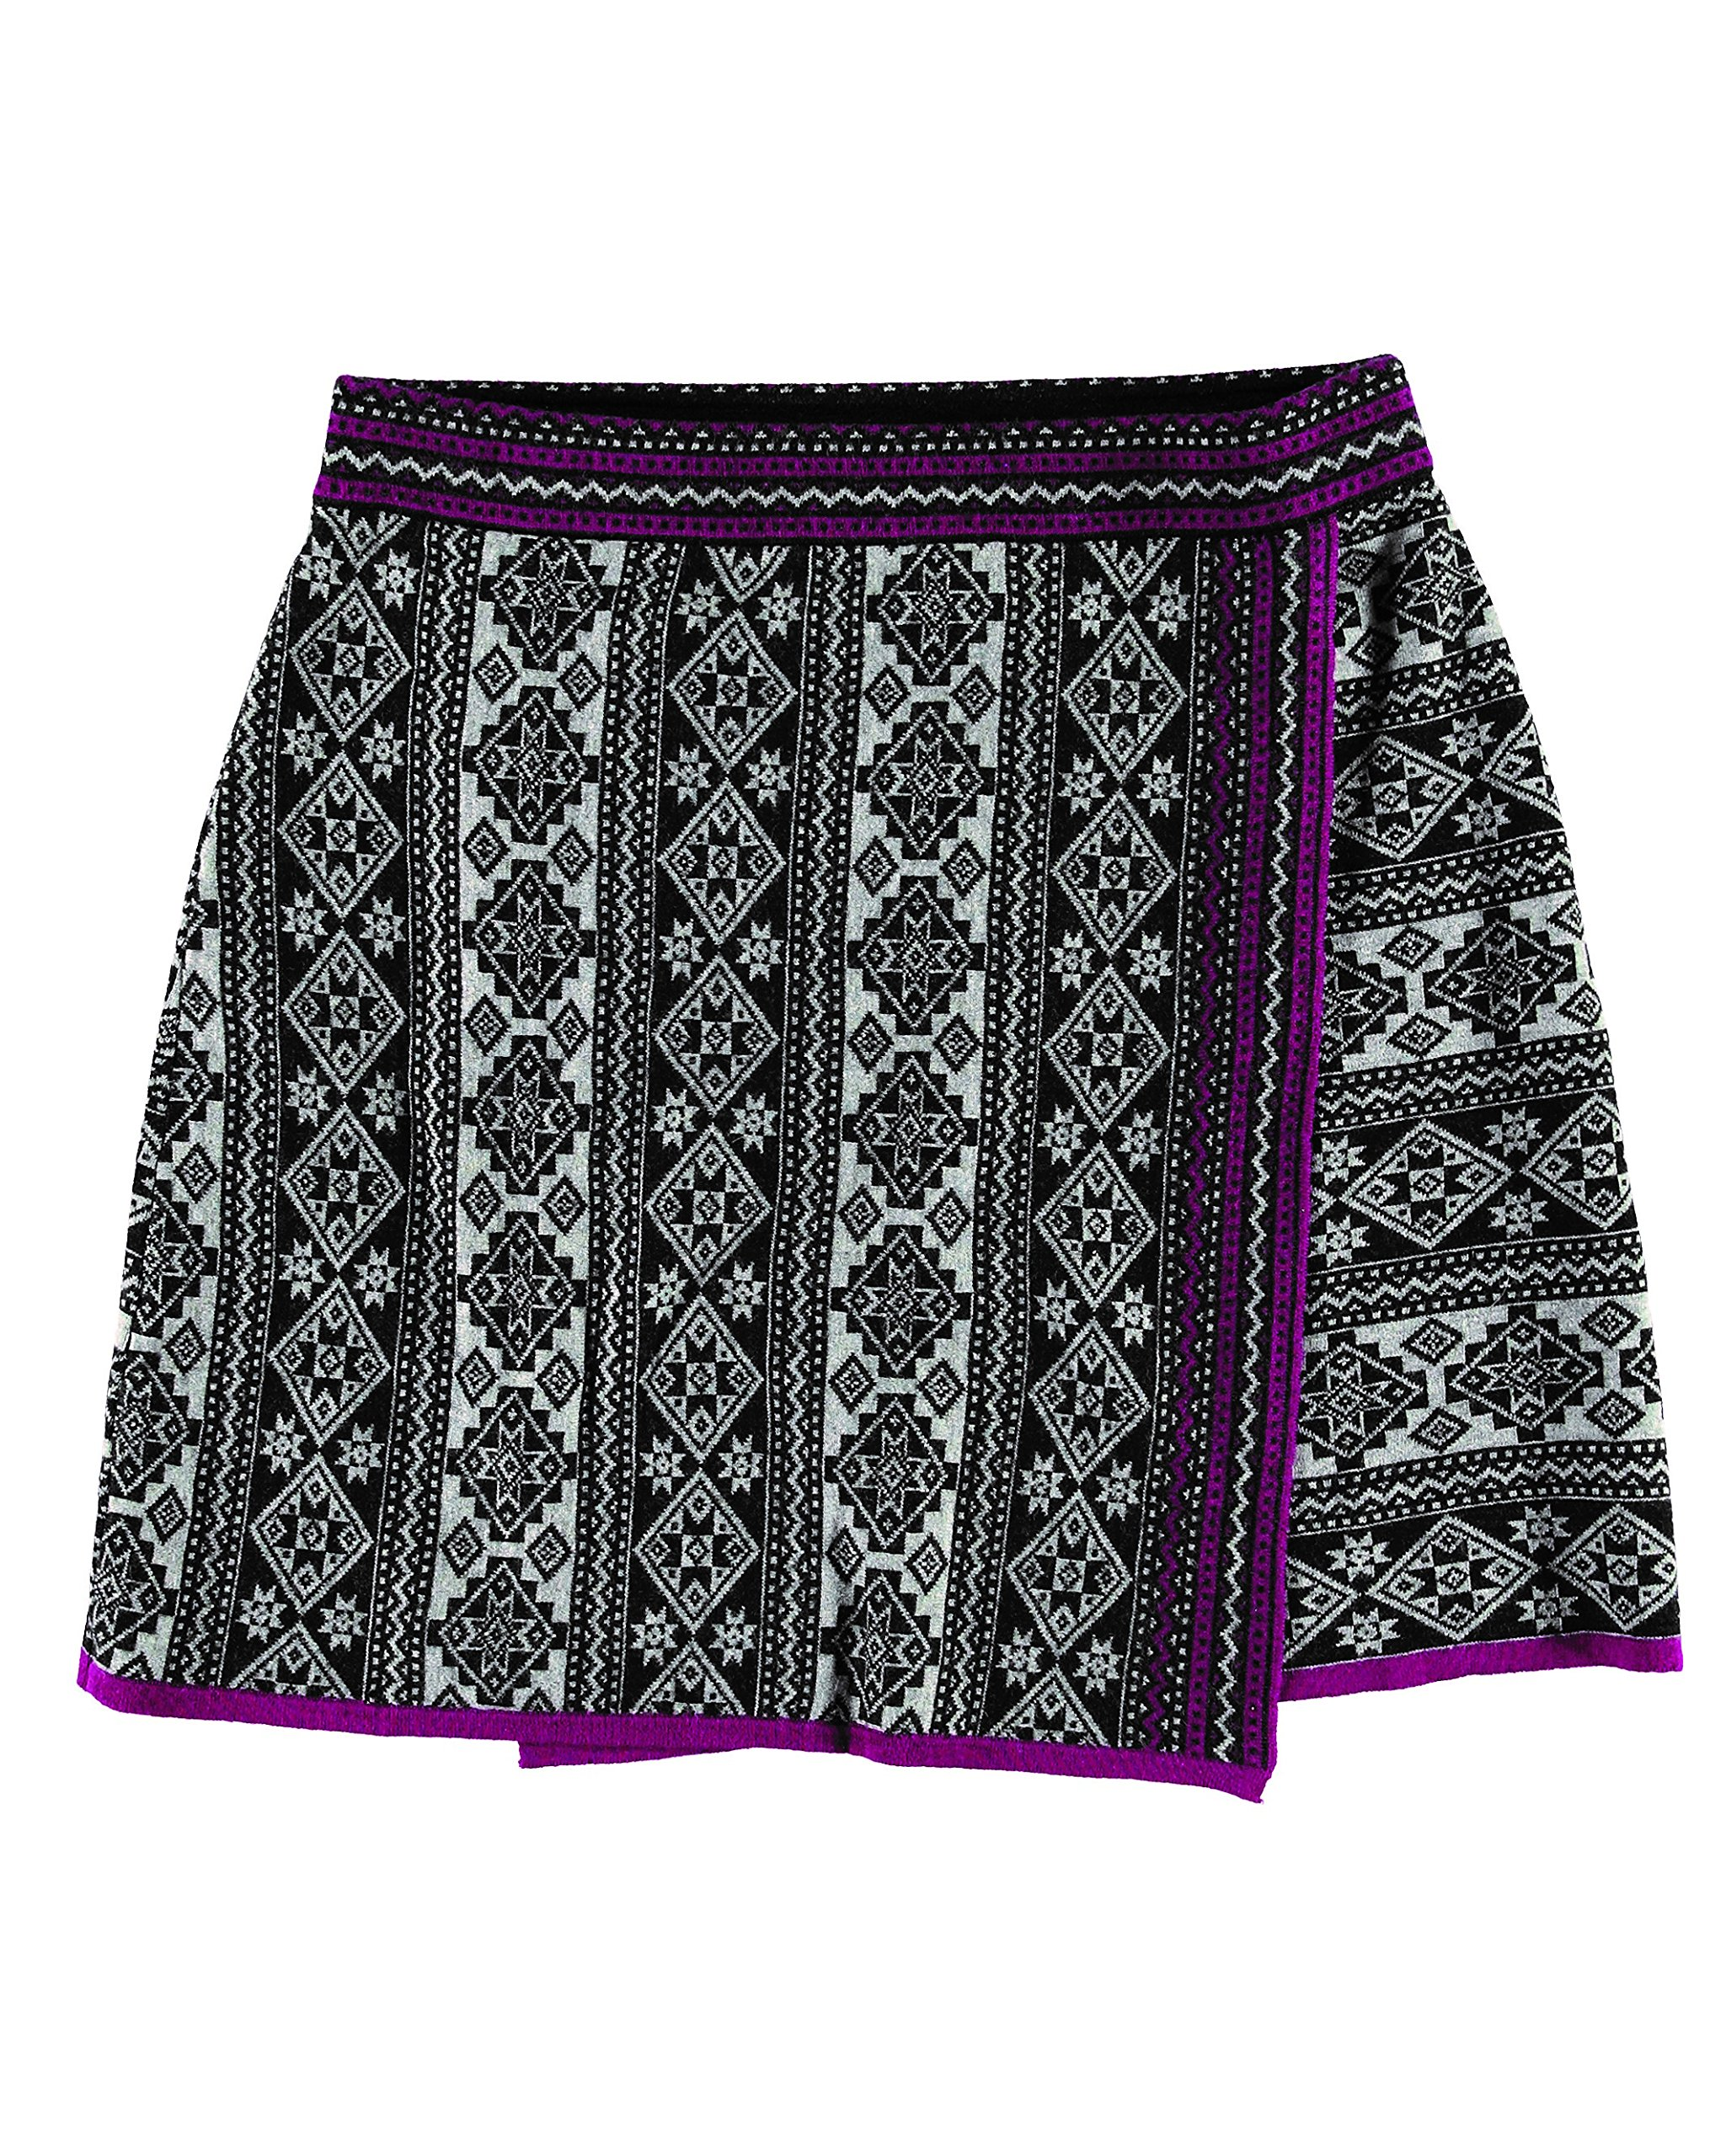 Krimson Klover Chantal Fair Isle Wrap Skirt - ( Loganberry, Medium ) by Krimson Klover